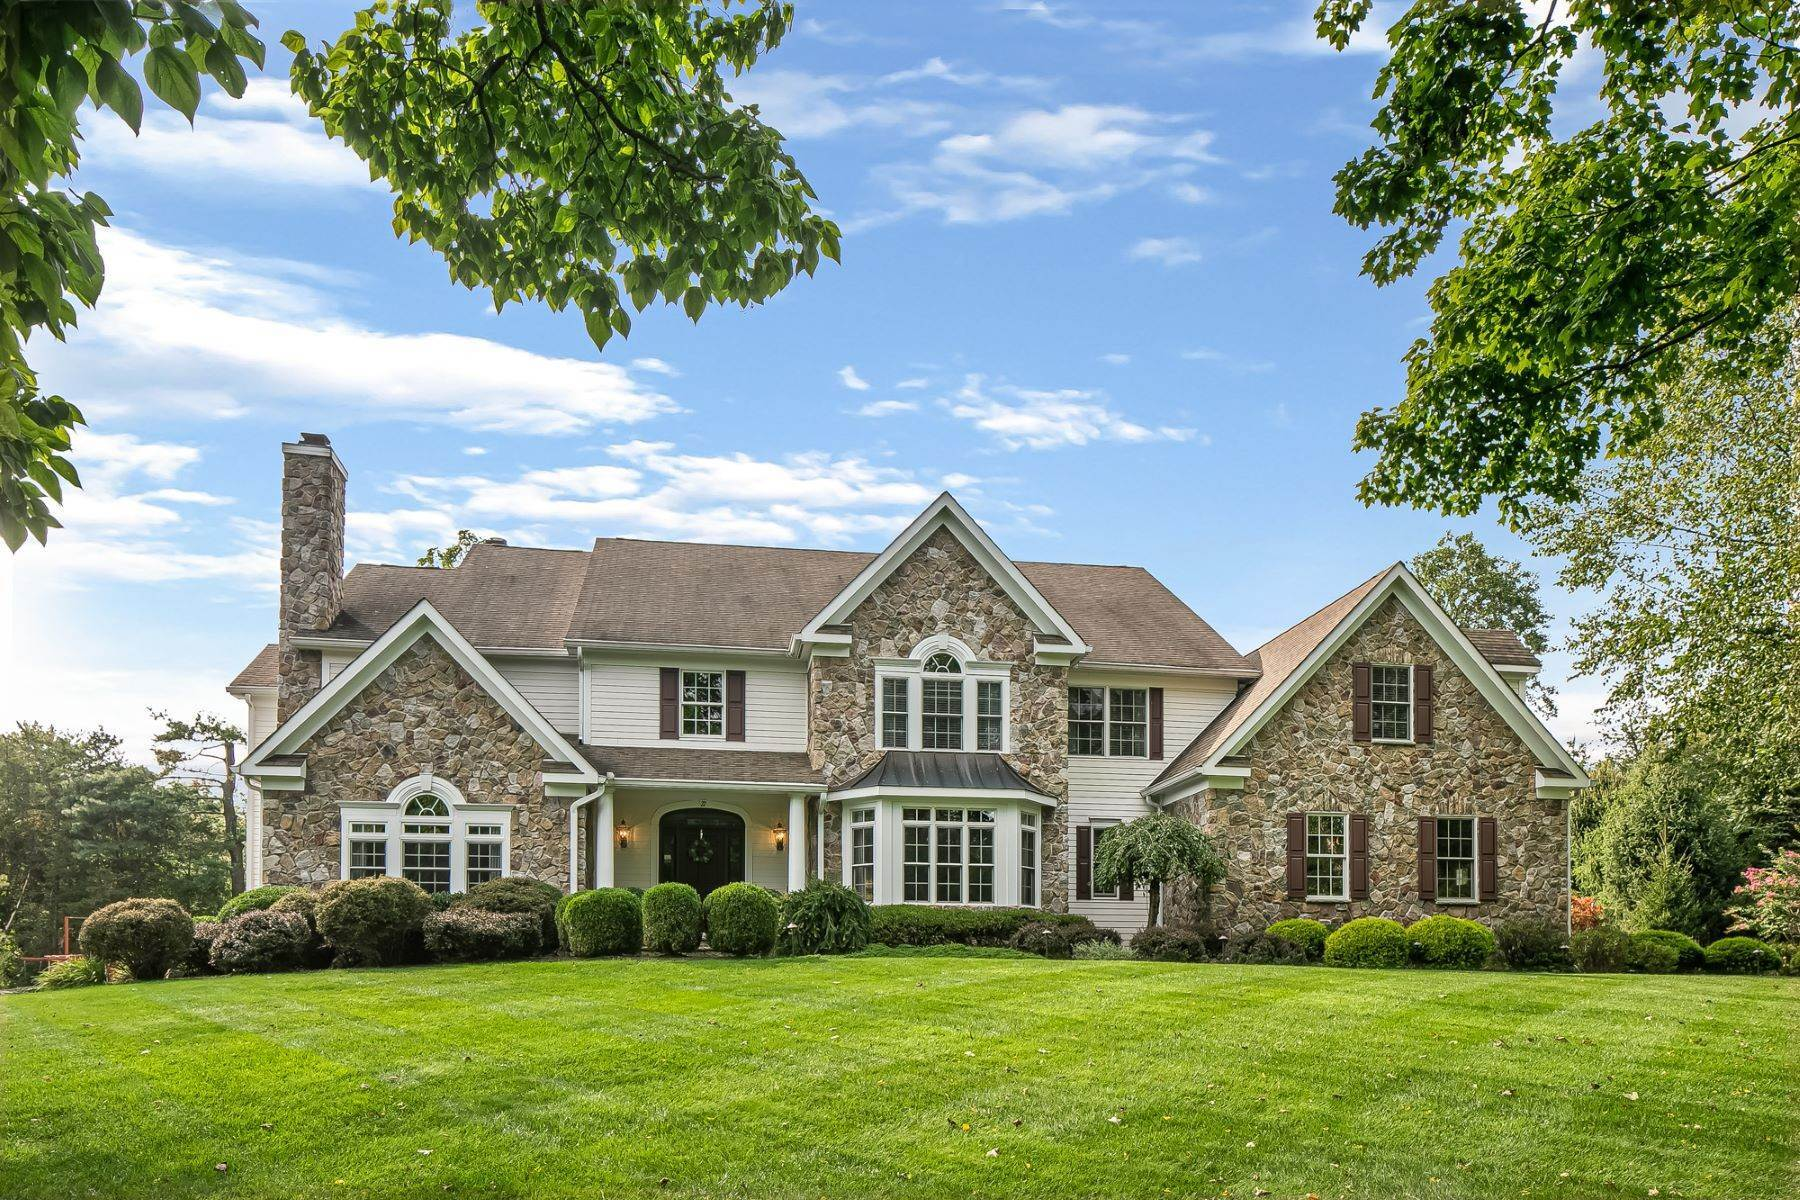 Single Family Homes for Sale at Elegant Custom Colonial 22 Essex Place Basking Ridge, New Jersey 07920 United States